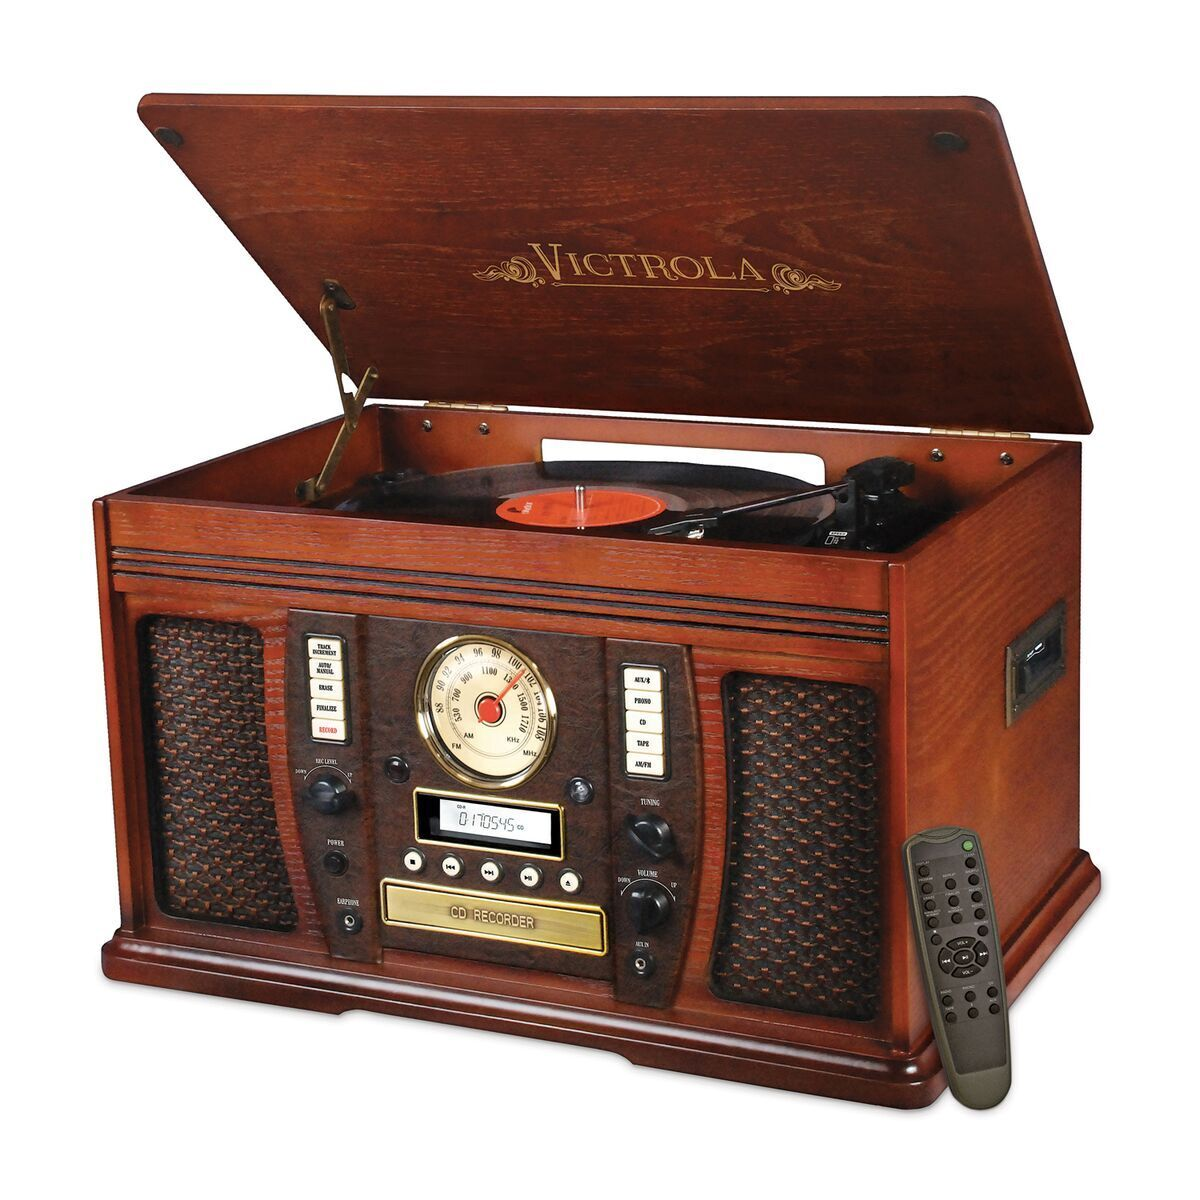 Innovative Itvs-750b The Aviator 7-in-1 Wooden Music Center with Bluetooth